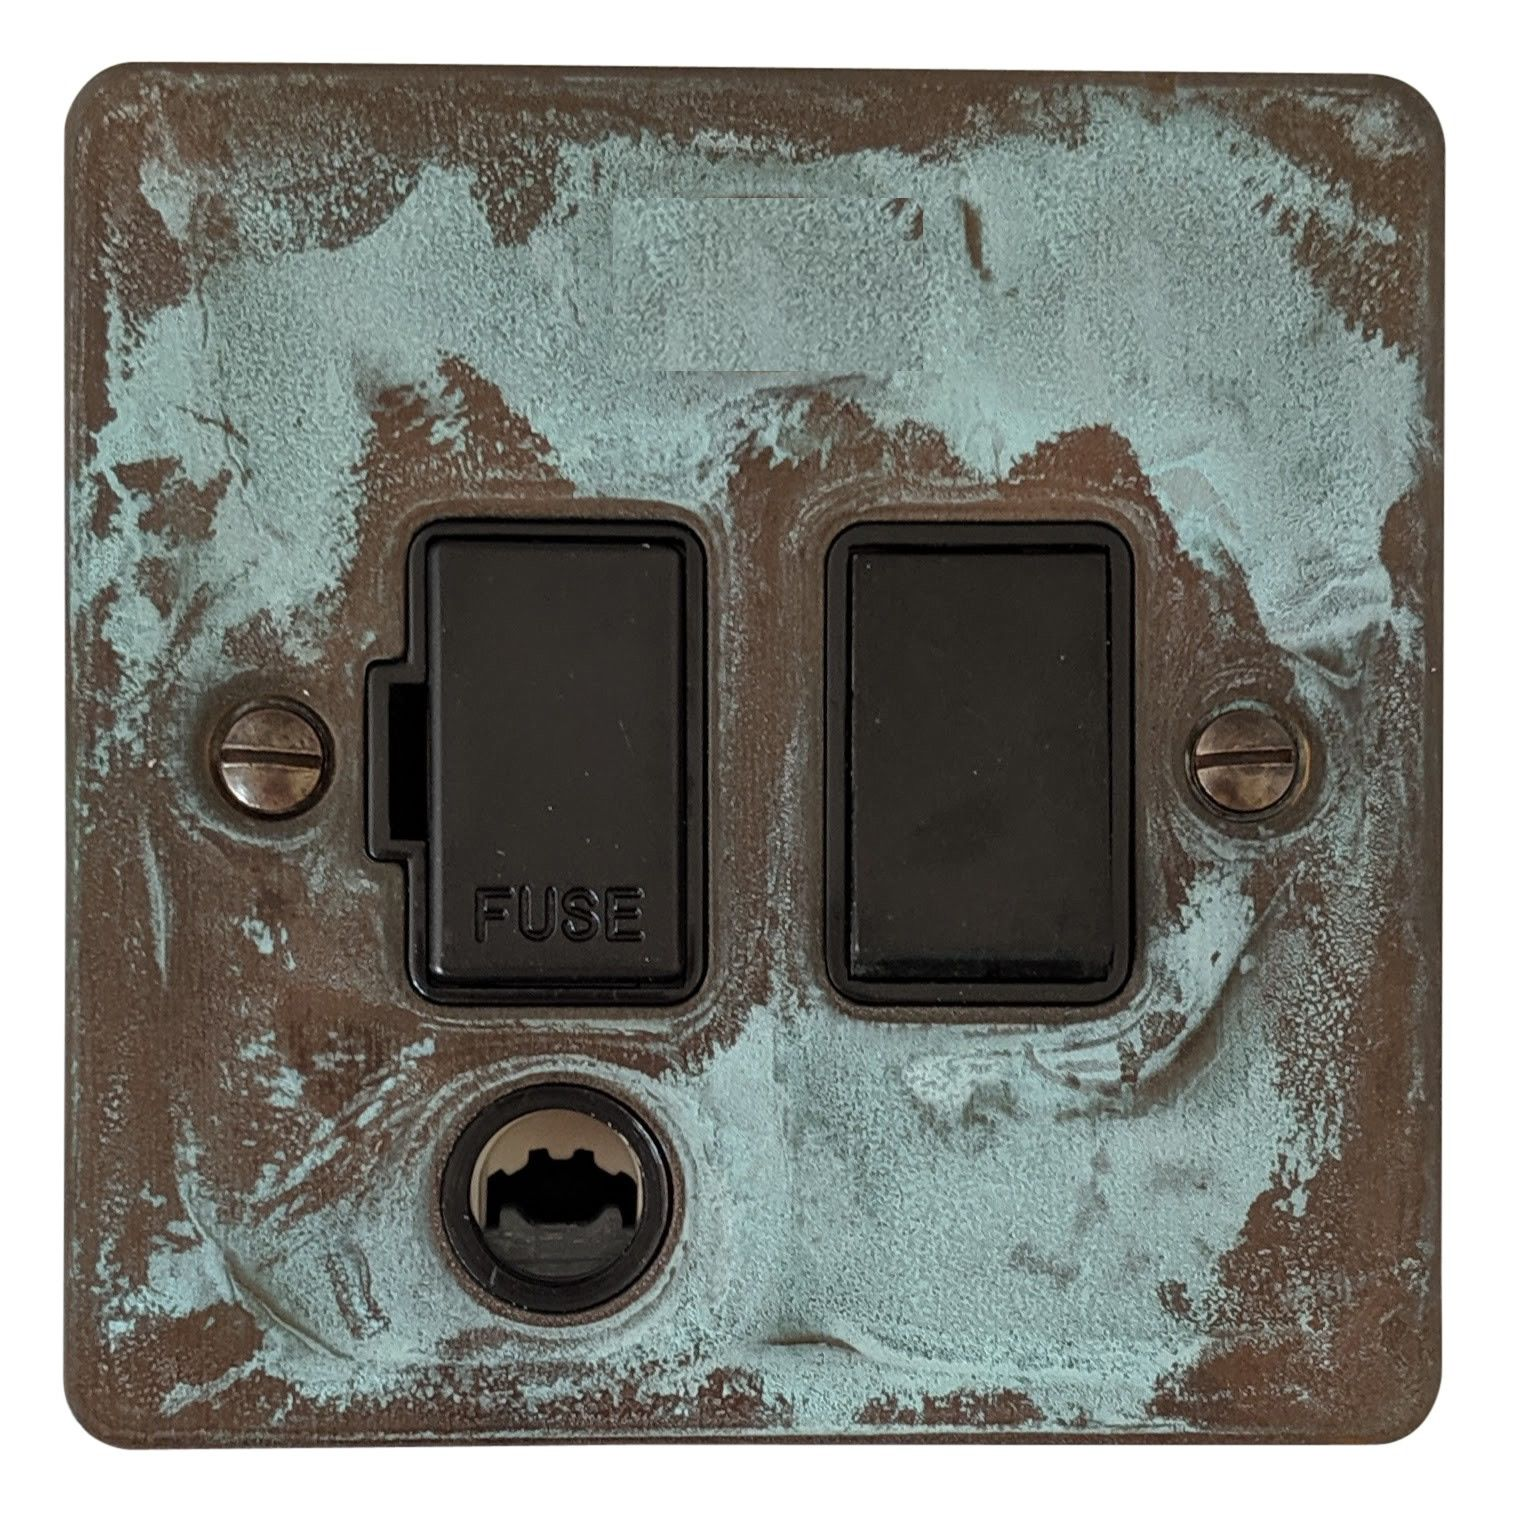 G&H FV56B Flat Plate Verdigris 1 Gang Fused Spur 13A Switched & Flex Outlet